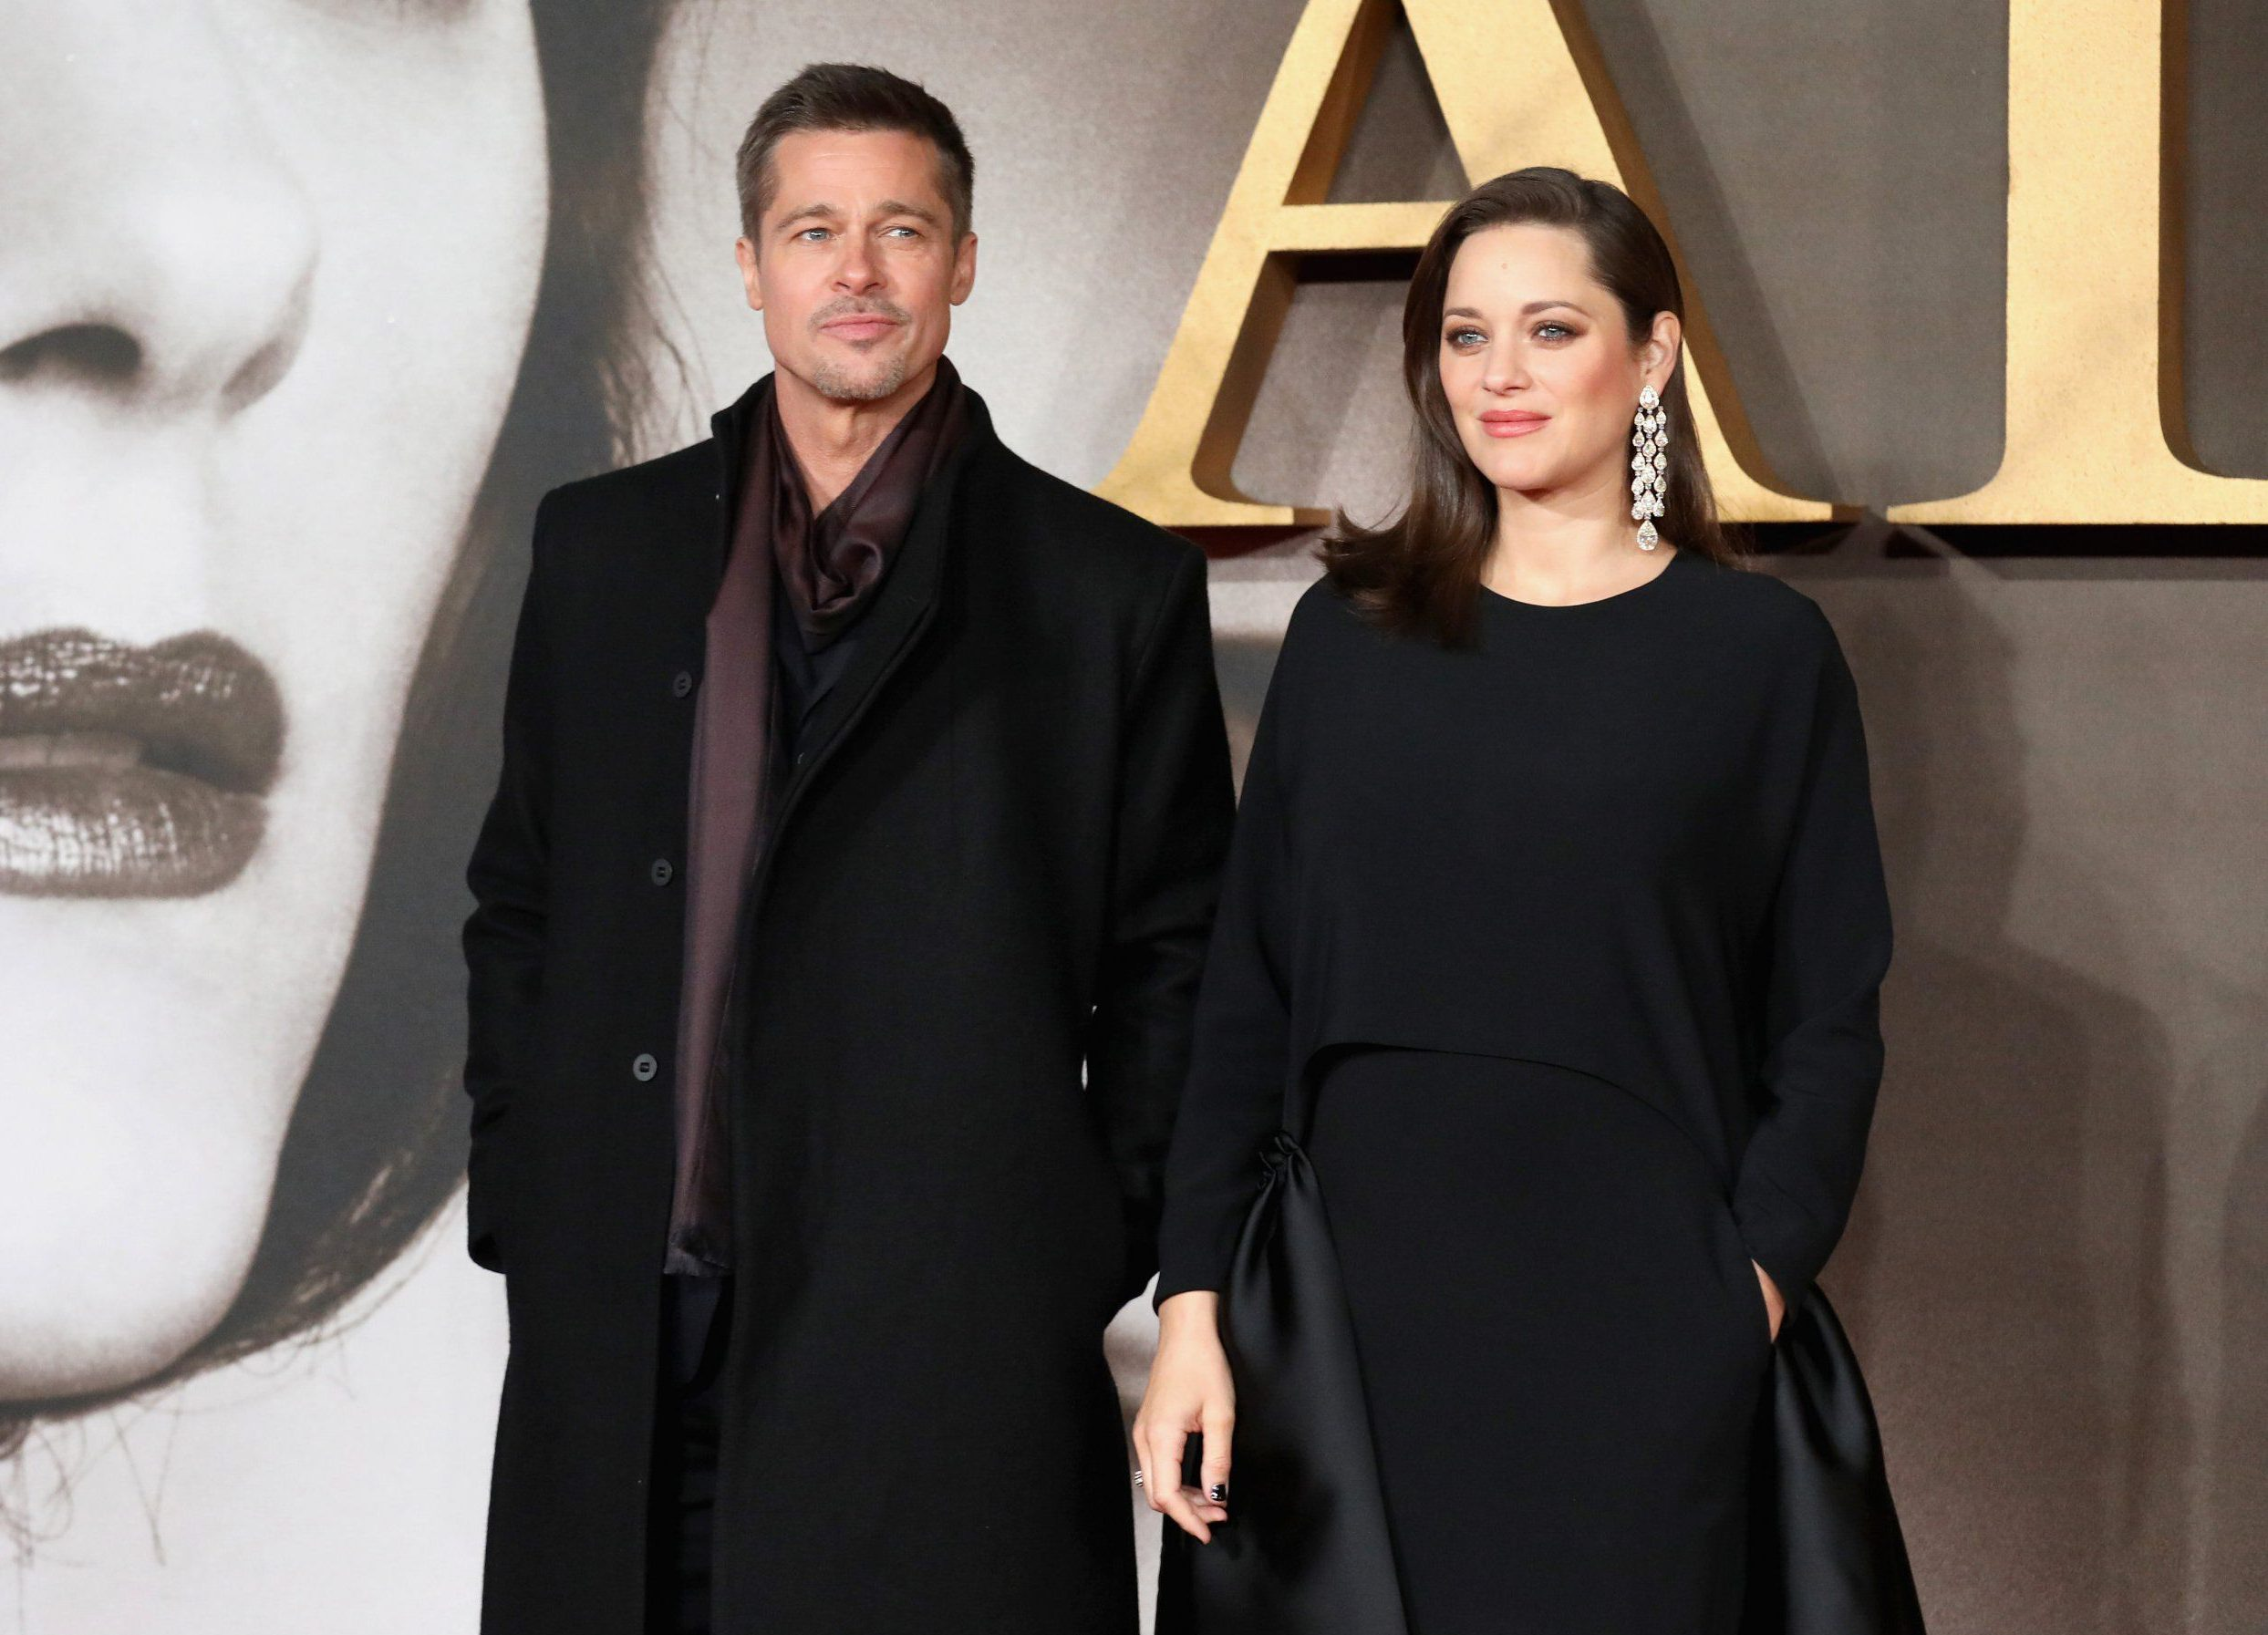 """LONDON, ENGLAND - NOVEMBER 21: Brad Pitt and Marion Cotillard attend the UK Premiere of """"Allied"""" at Odeon Leicester Square on November 21, 2016 in London, England. (Photo by Tim P. Whitby/Getty Images)"""